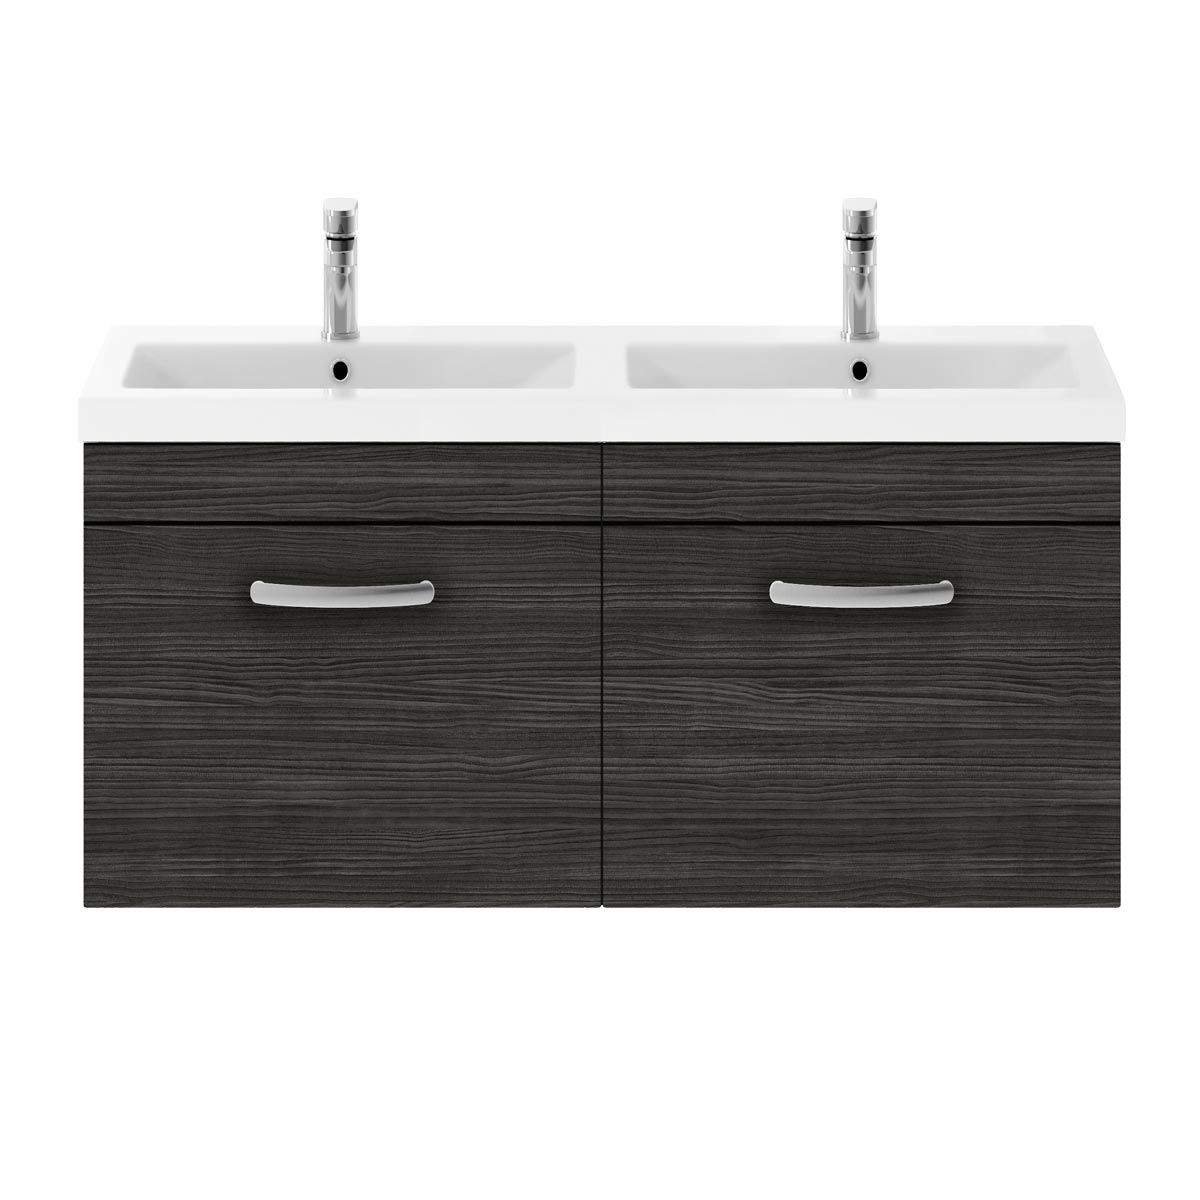 Nuie Athena Hacienda Black 2 Drawer Wall Hung Vanity Unit with Ceramic Double Basin 1200mm